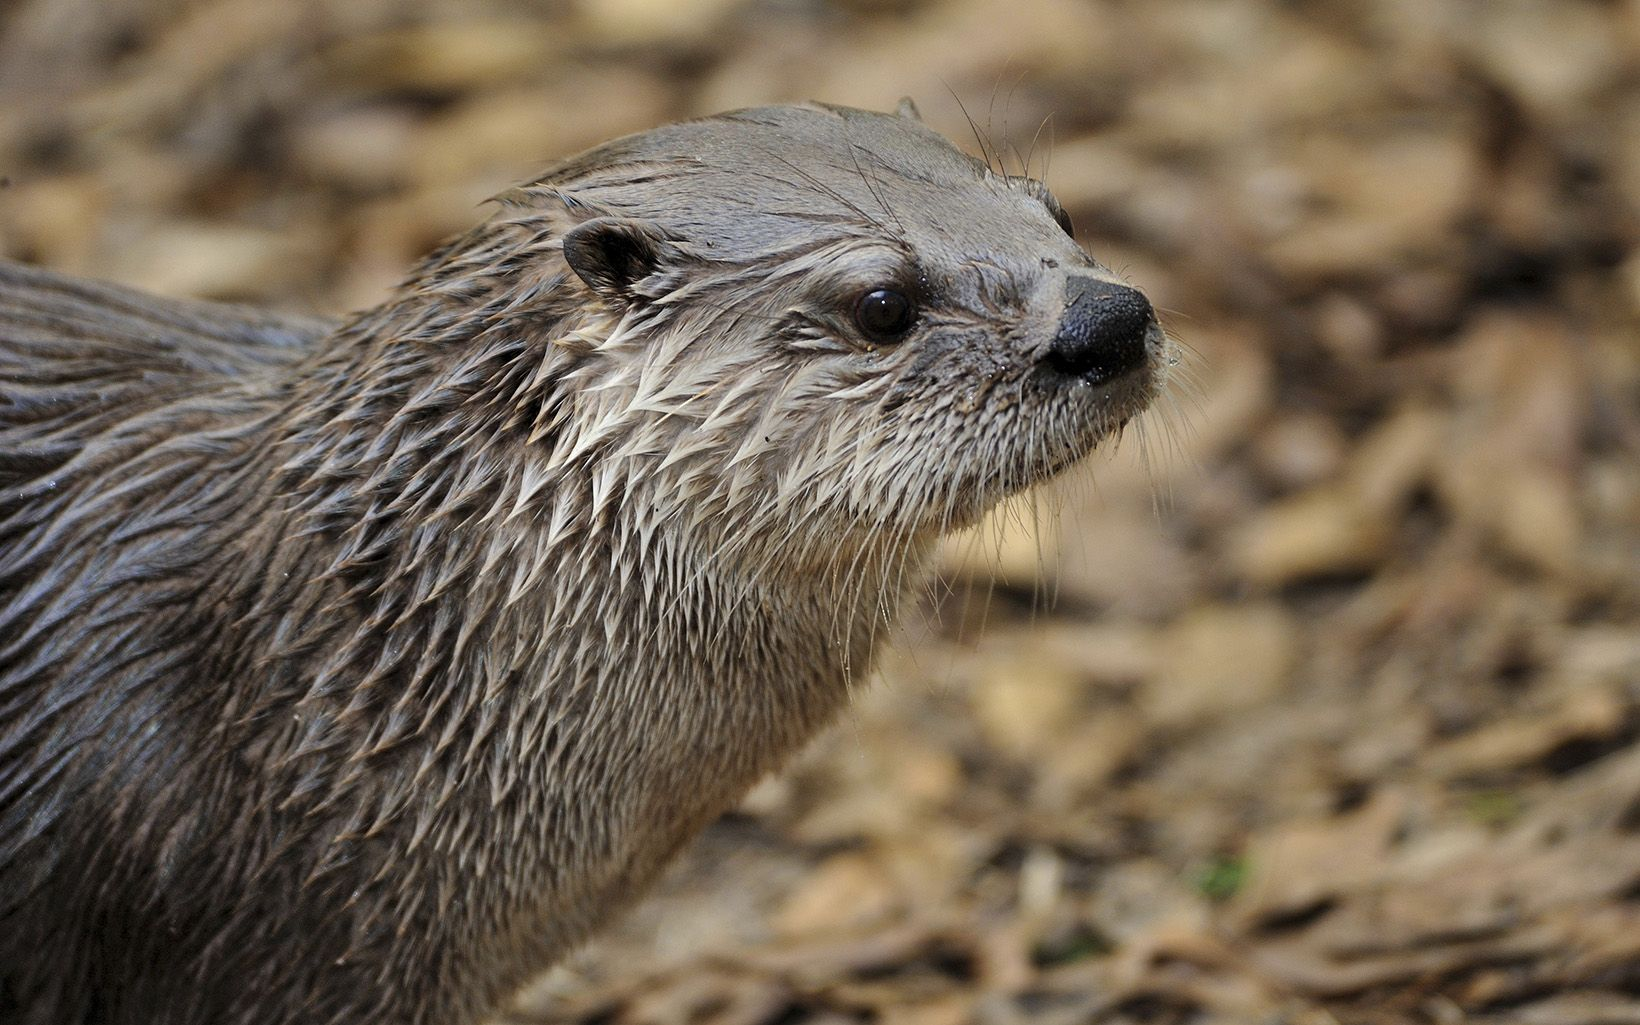 Once considered common on many rivers in the Northern Great Plains, river otters are now returning to parts of southern Minnesota and eastern North Dakota and South Dakota.